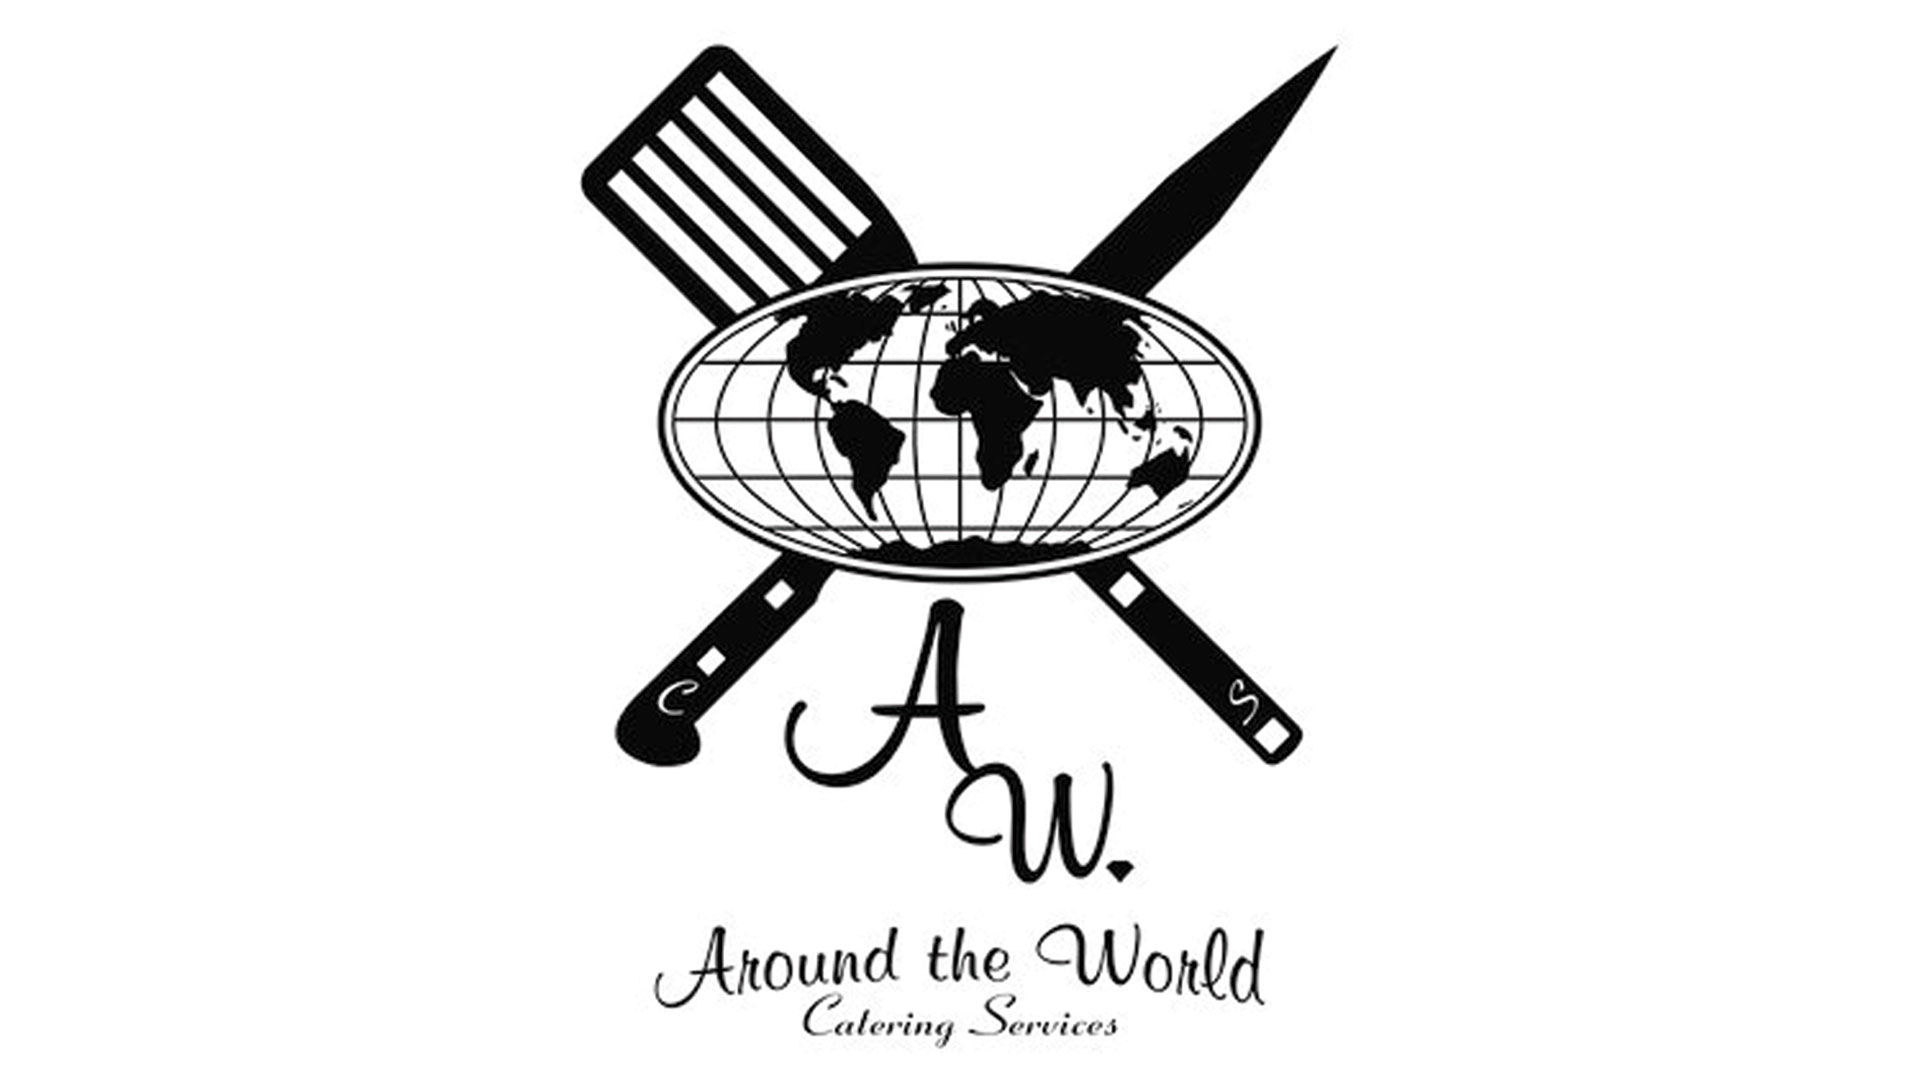 Around the World Catering